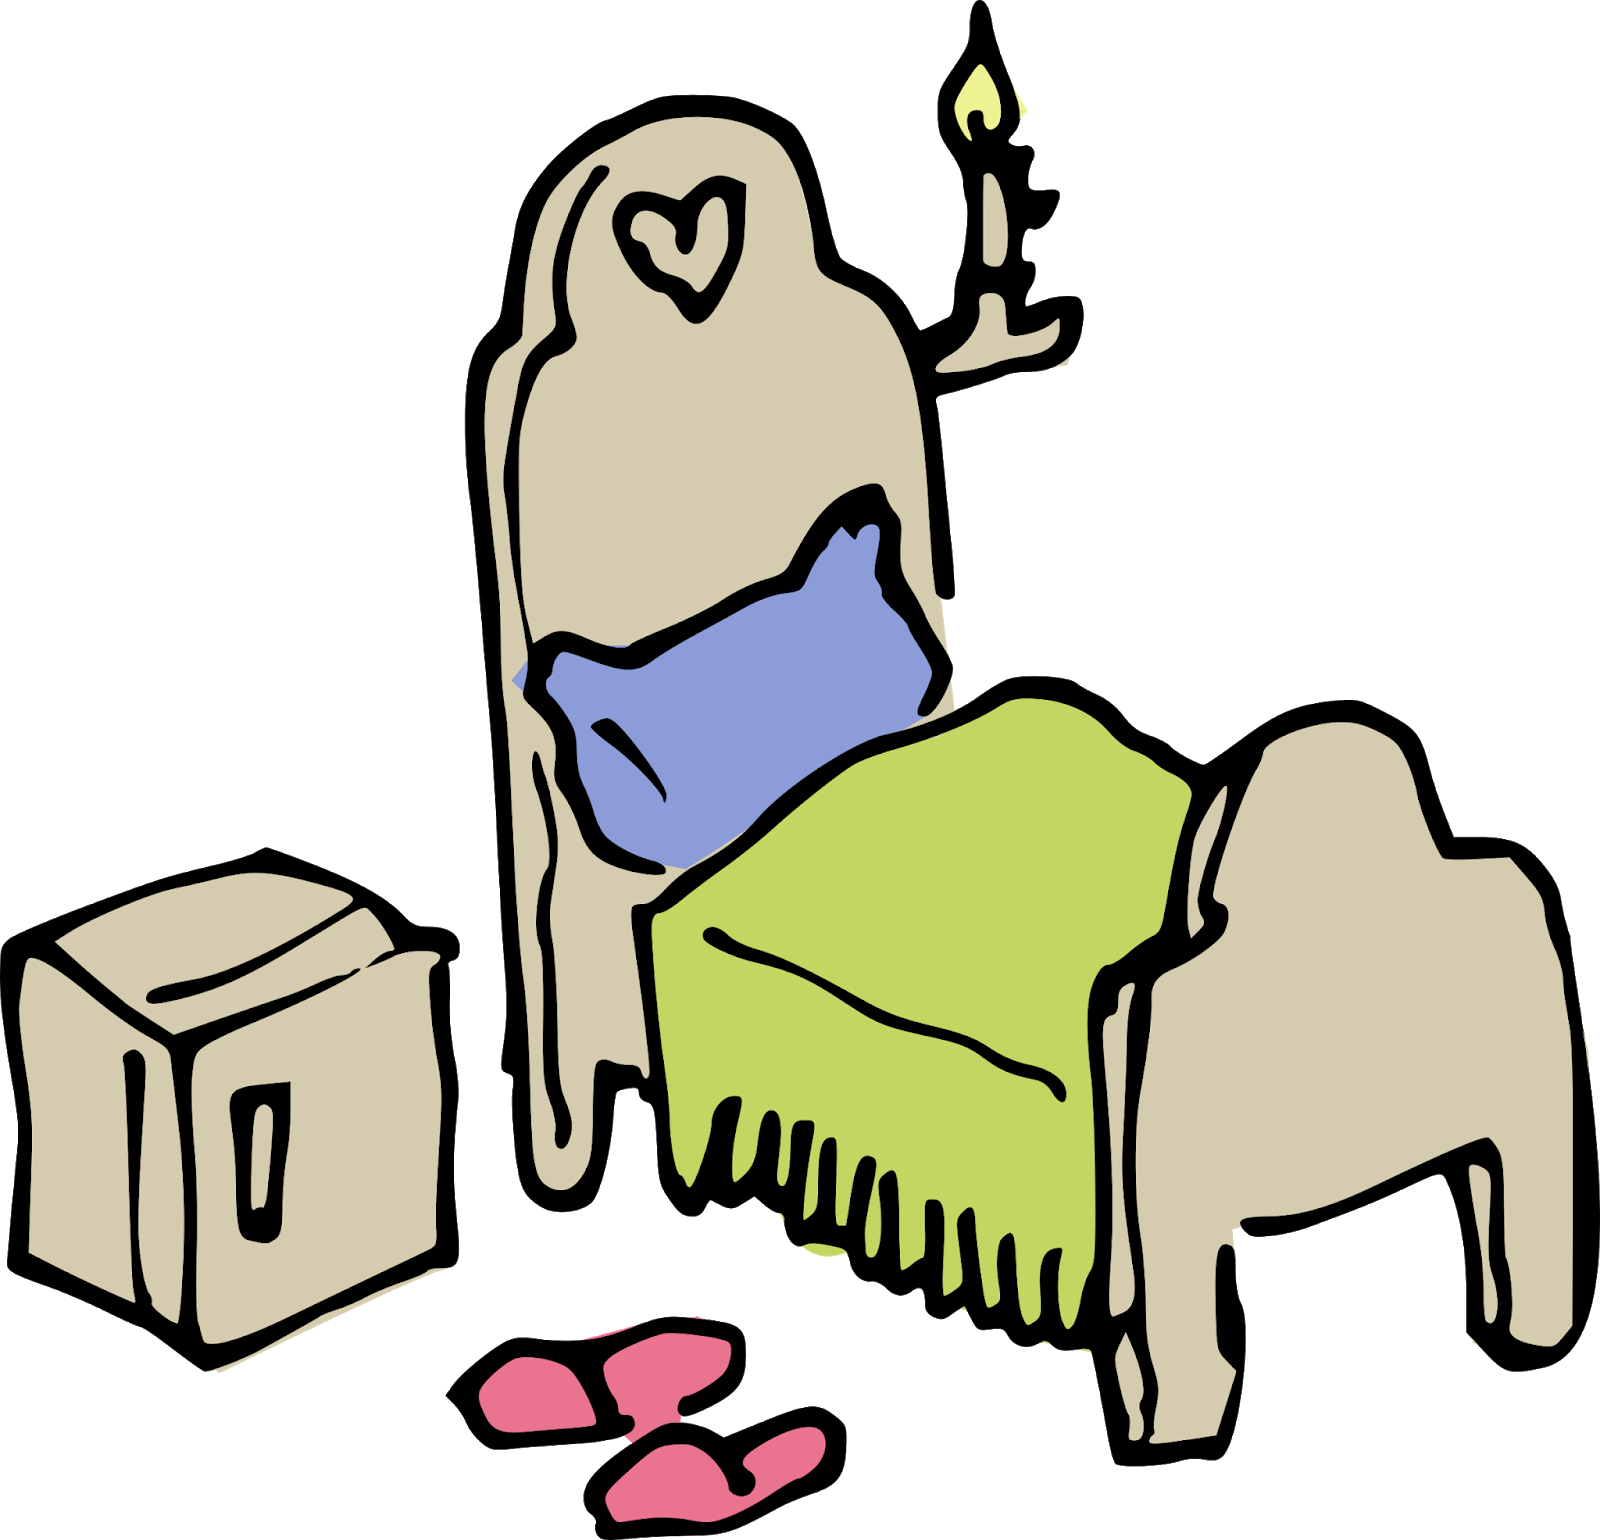 Dream clipart bed. Makeup is delicious how